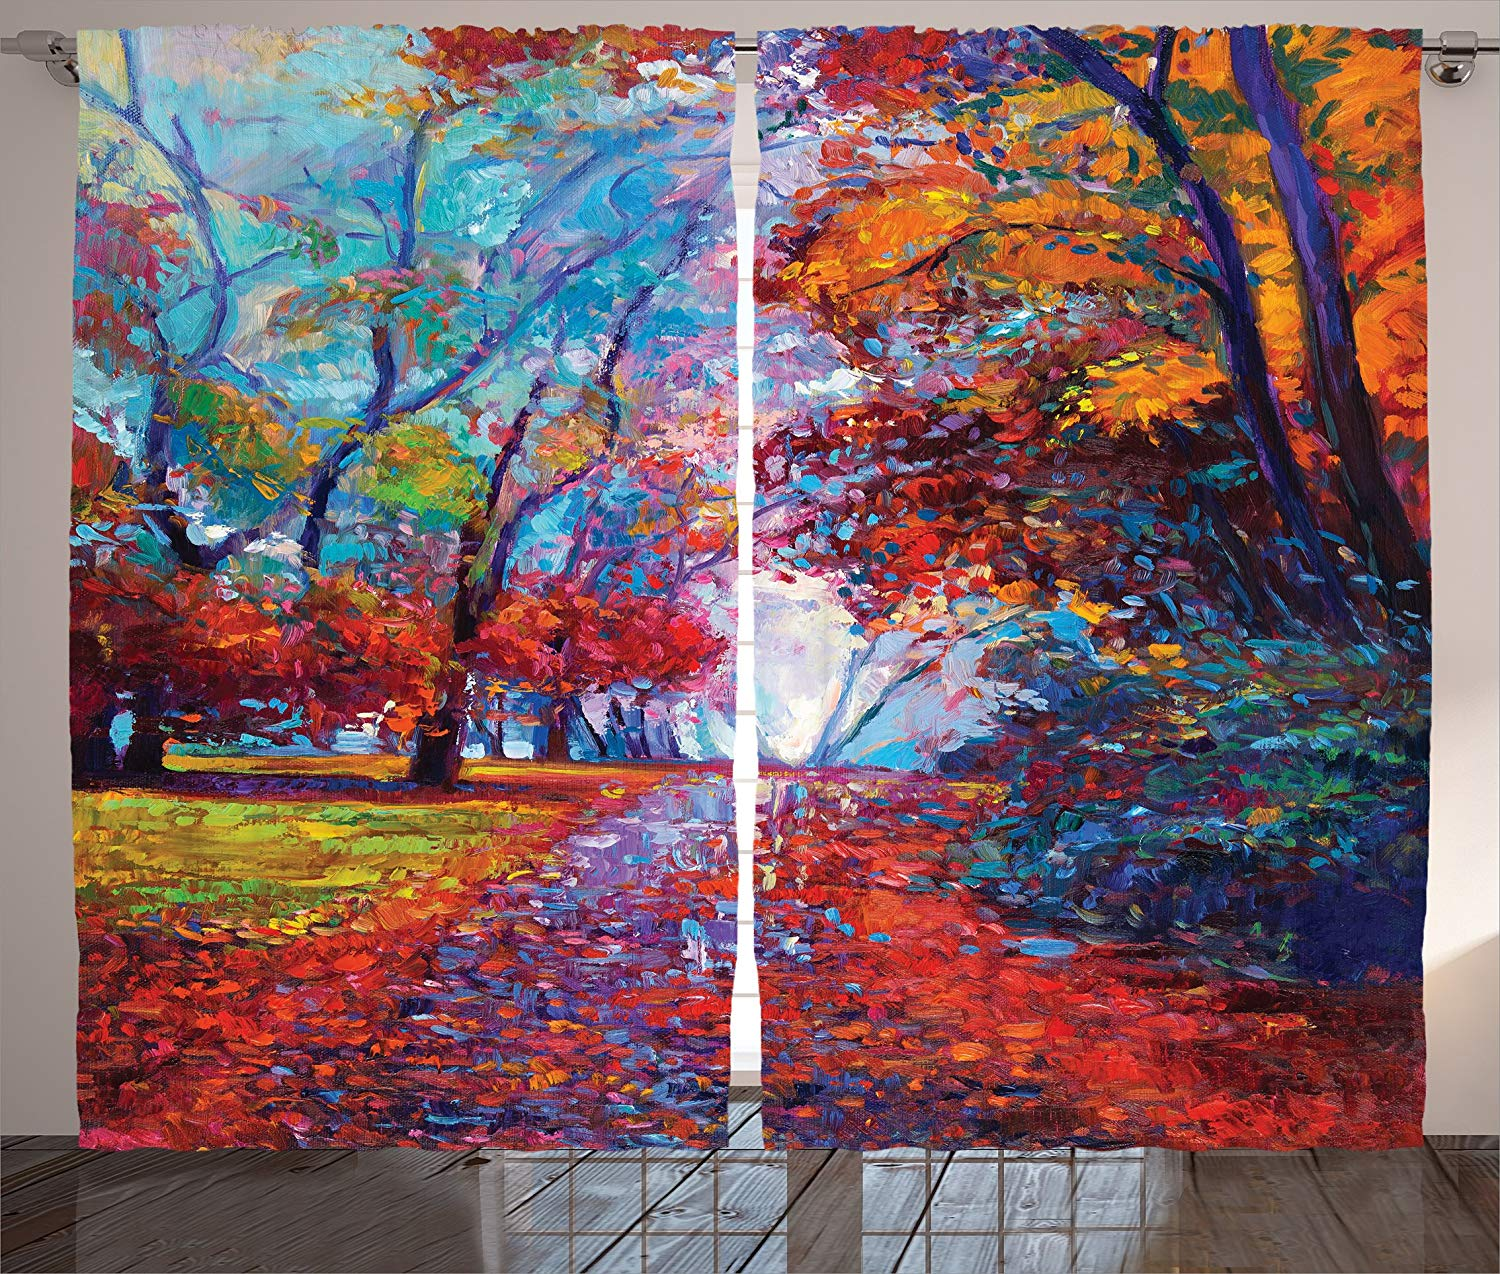 Us 13 62 35 Off Country Curtains Colorful Fairy Paint Of Park In Fall Arts View Of The Earth And Trees In The Nature Living Room Bedroom Decor In